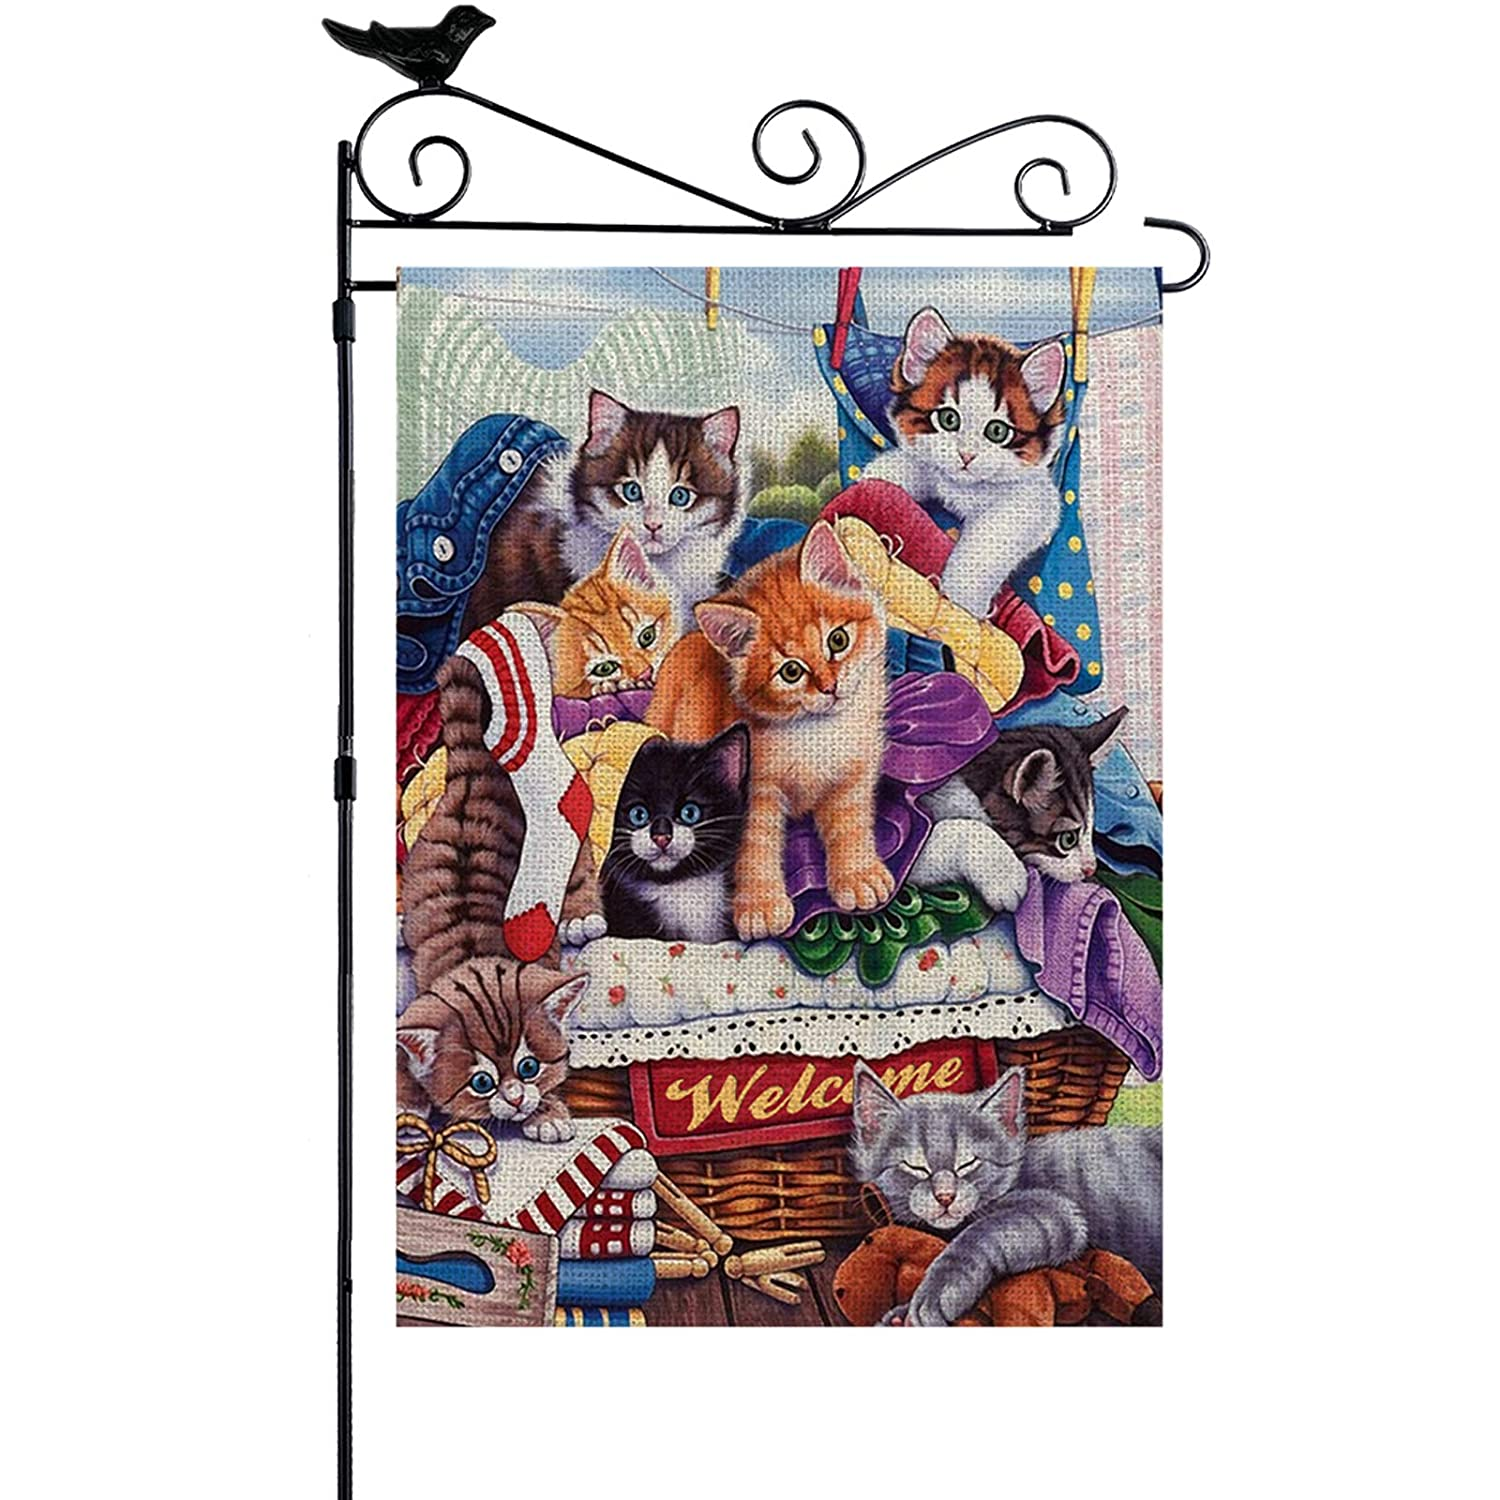 YISHOW Welcome Cute Cat Garden Flag Double Sided Vertical House Banner Home Burlap Flags Welcome Yard Signs Outdoor Decor 12.5